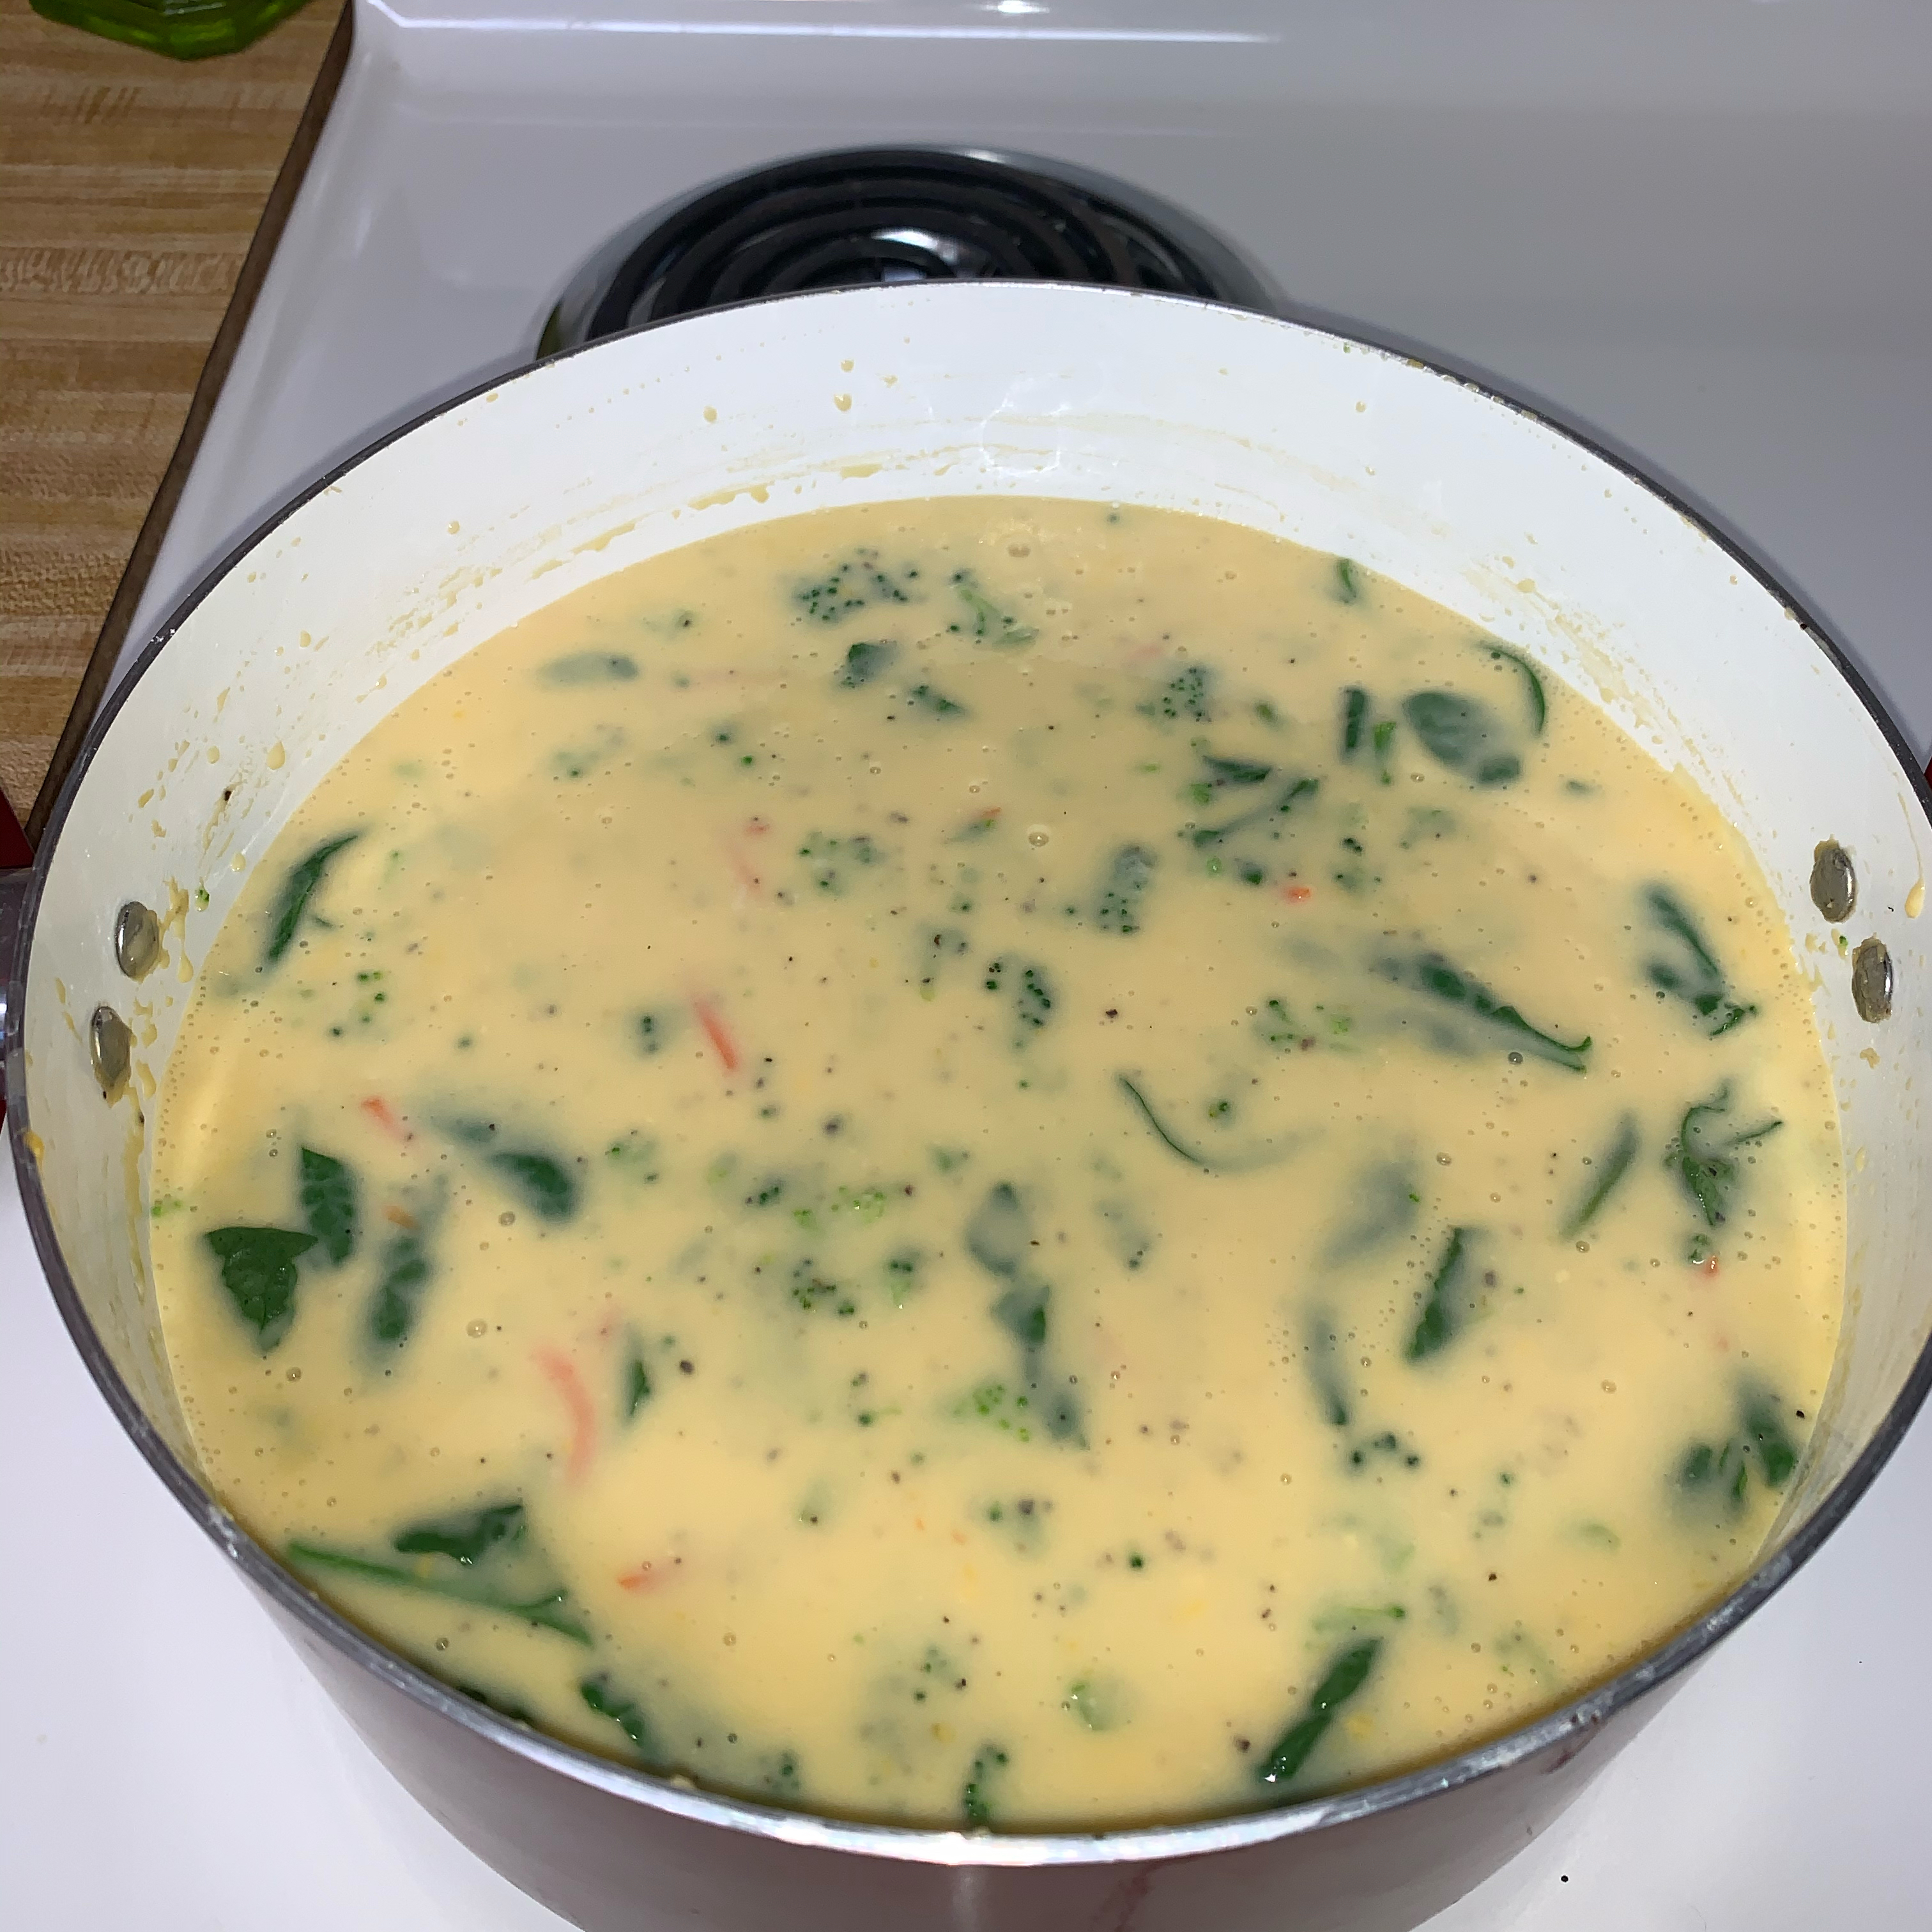 Excellent Broccoli Cheese Soup